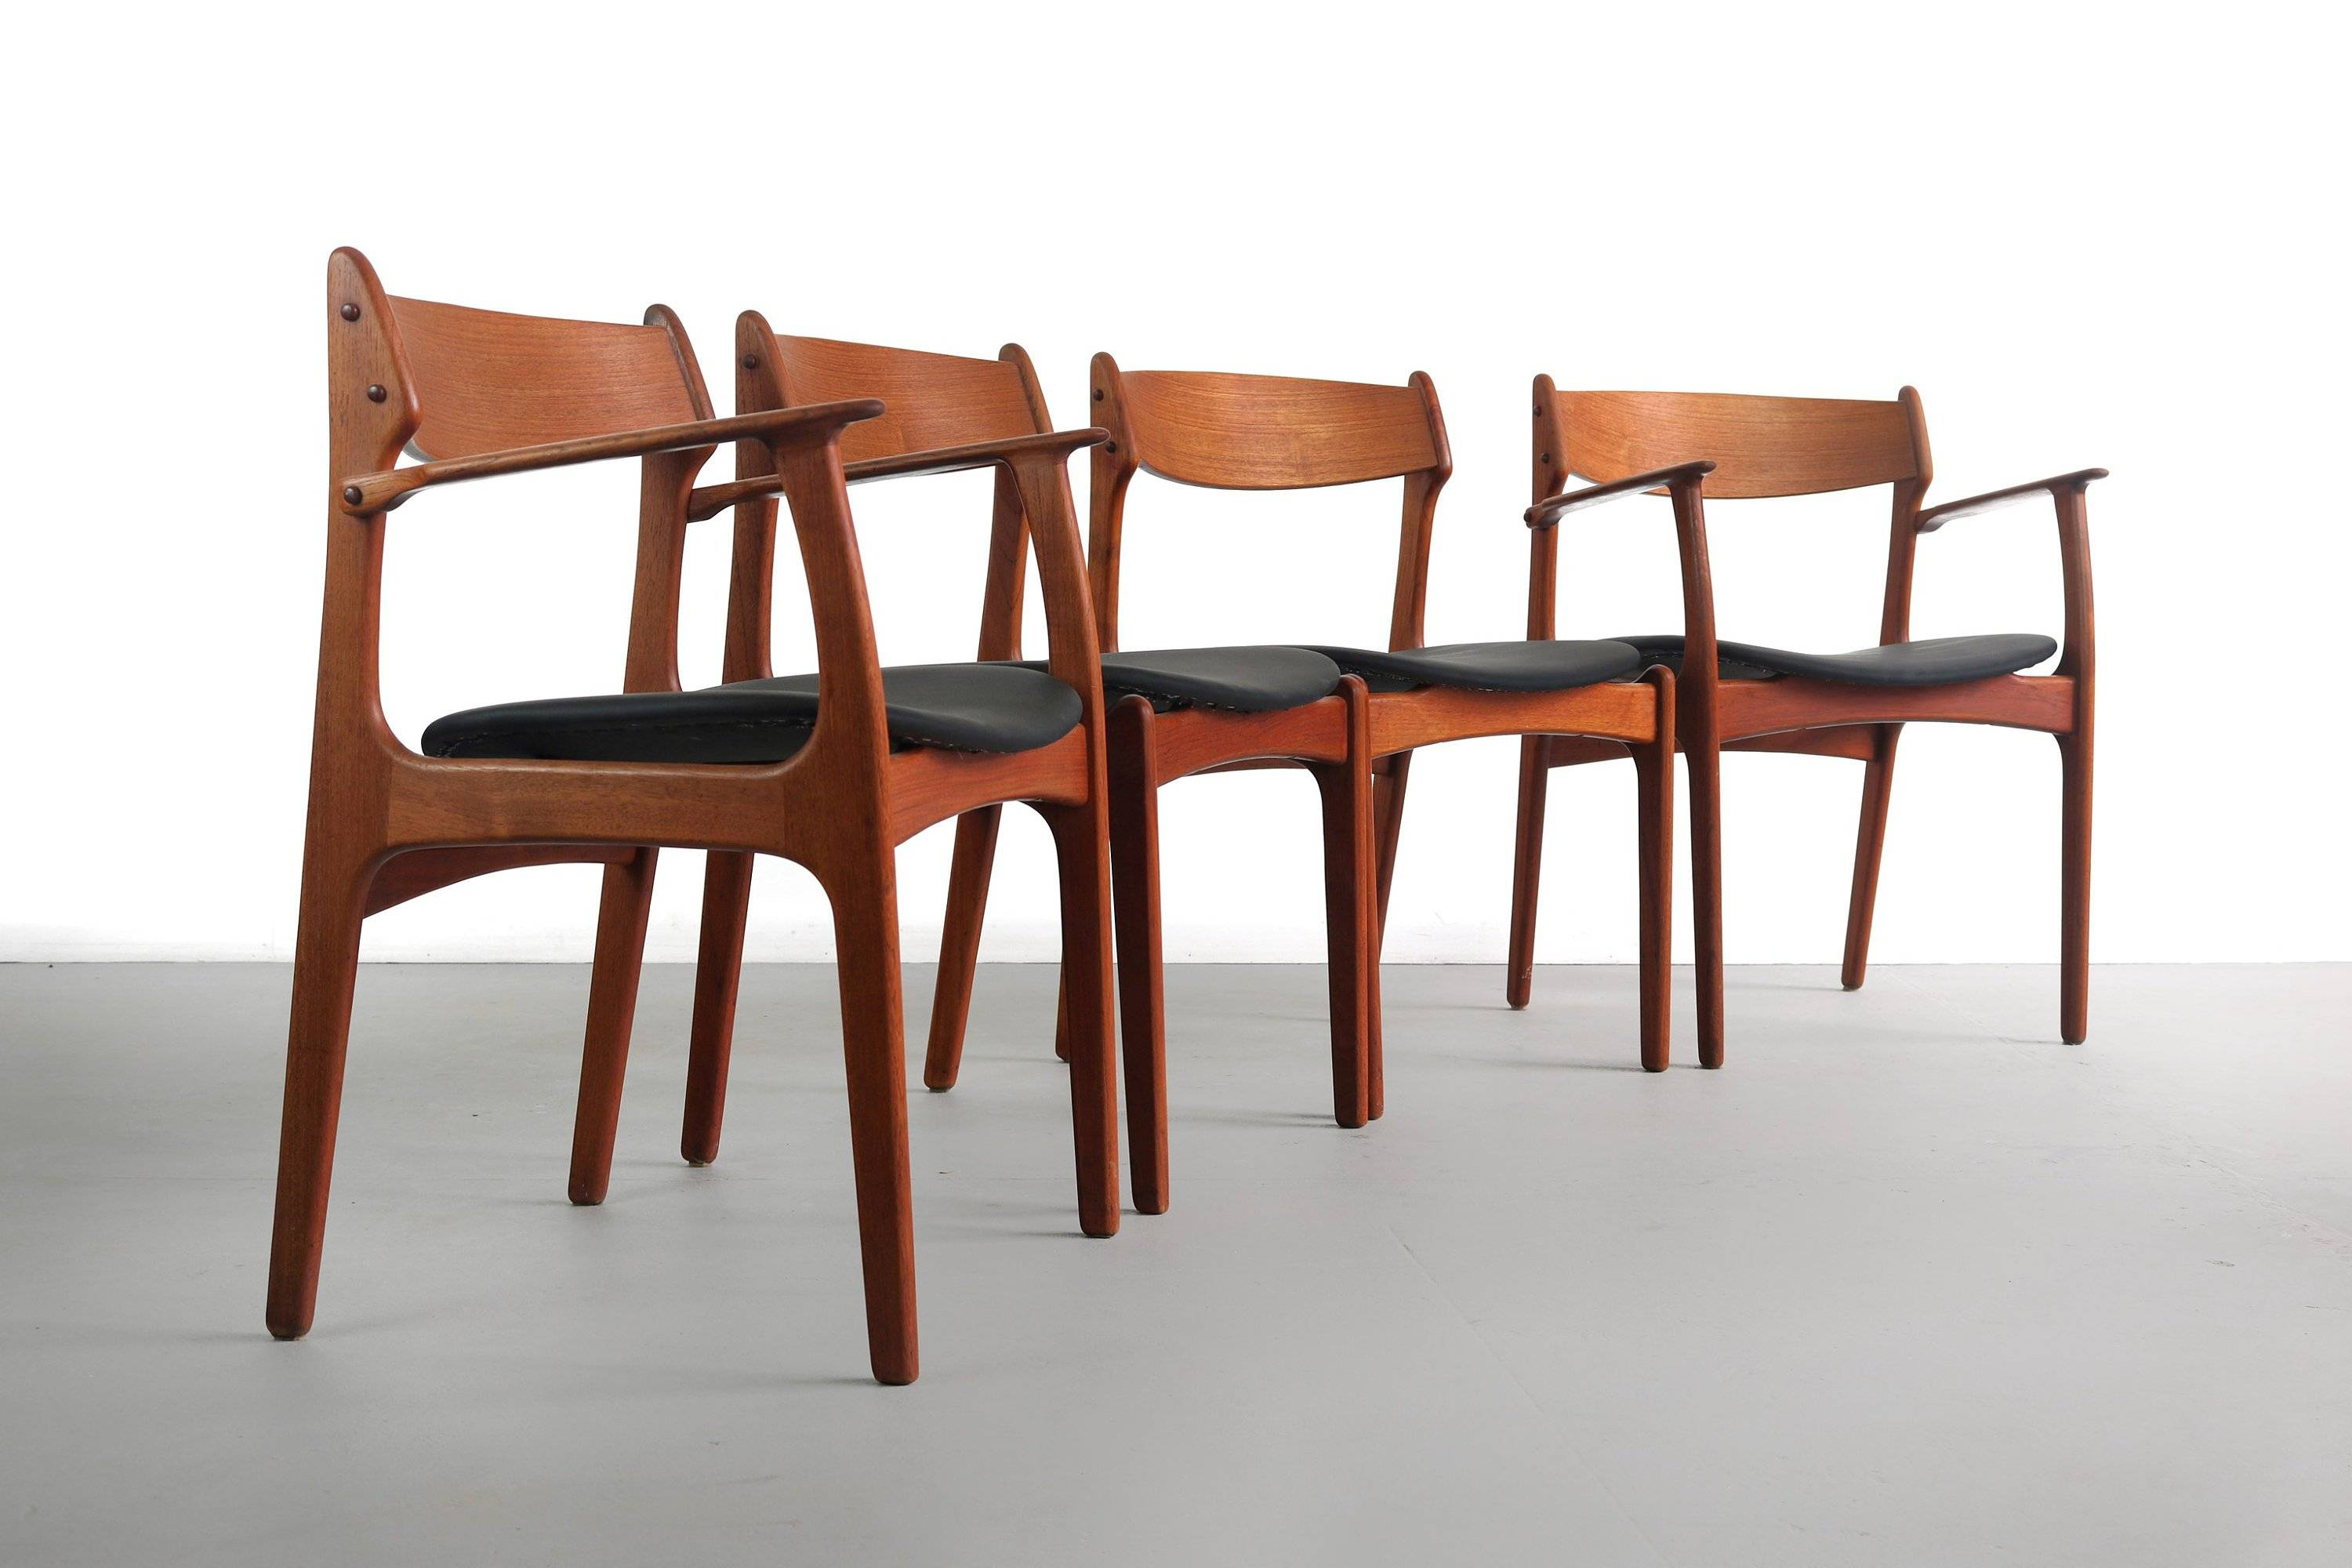 set of 4 teak dining chairs by erik buch for o d mobler denmark 5cdac1901